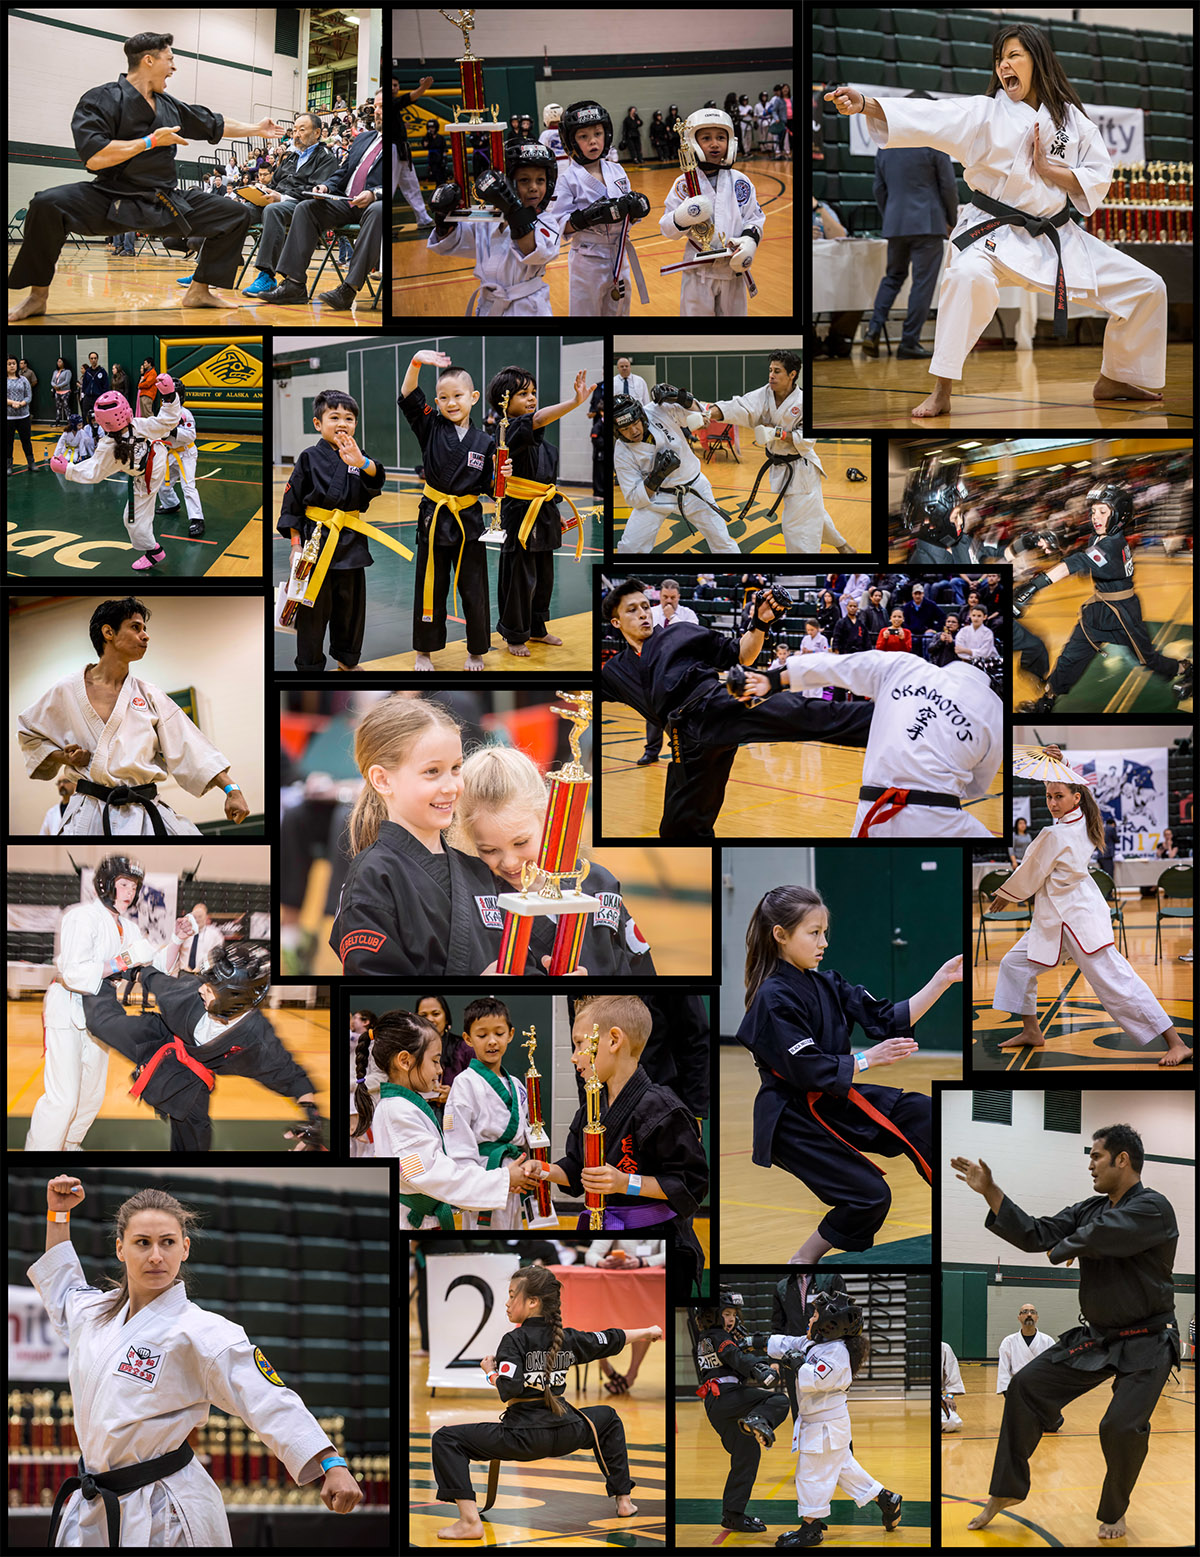 2018 tourney pics collage 4-1